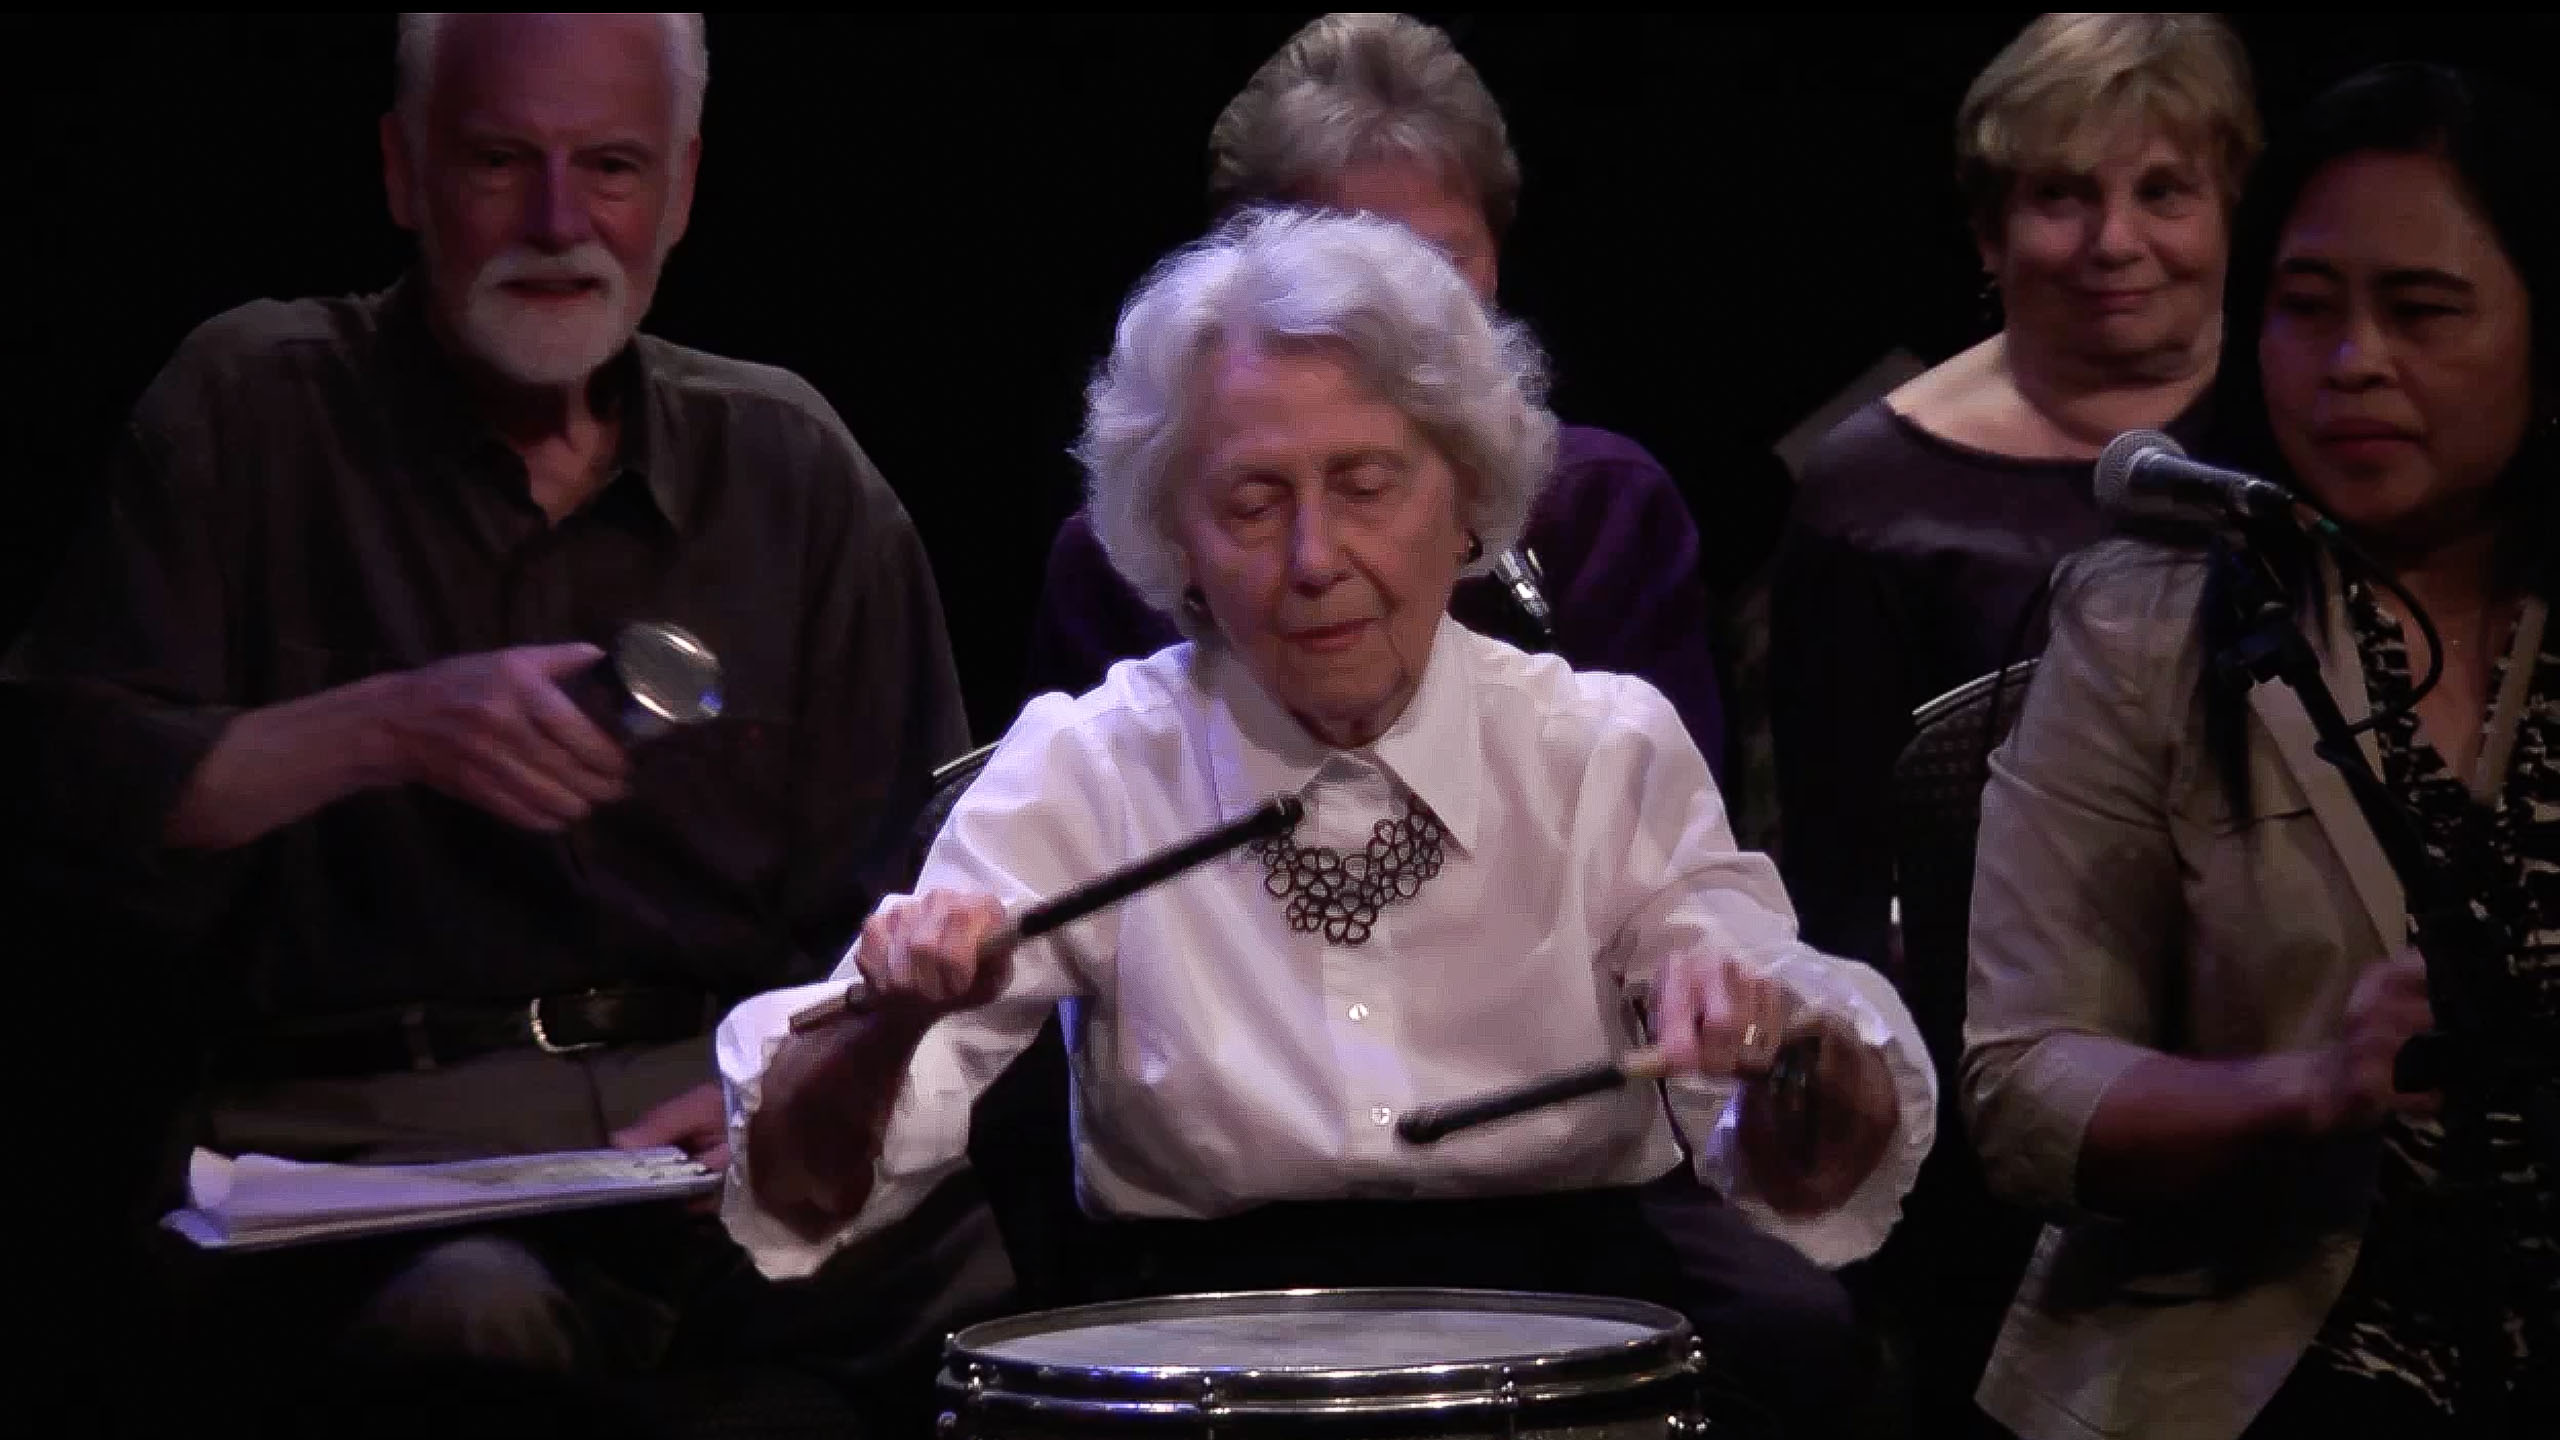 An elder plays percussions